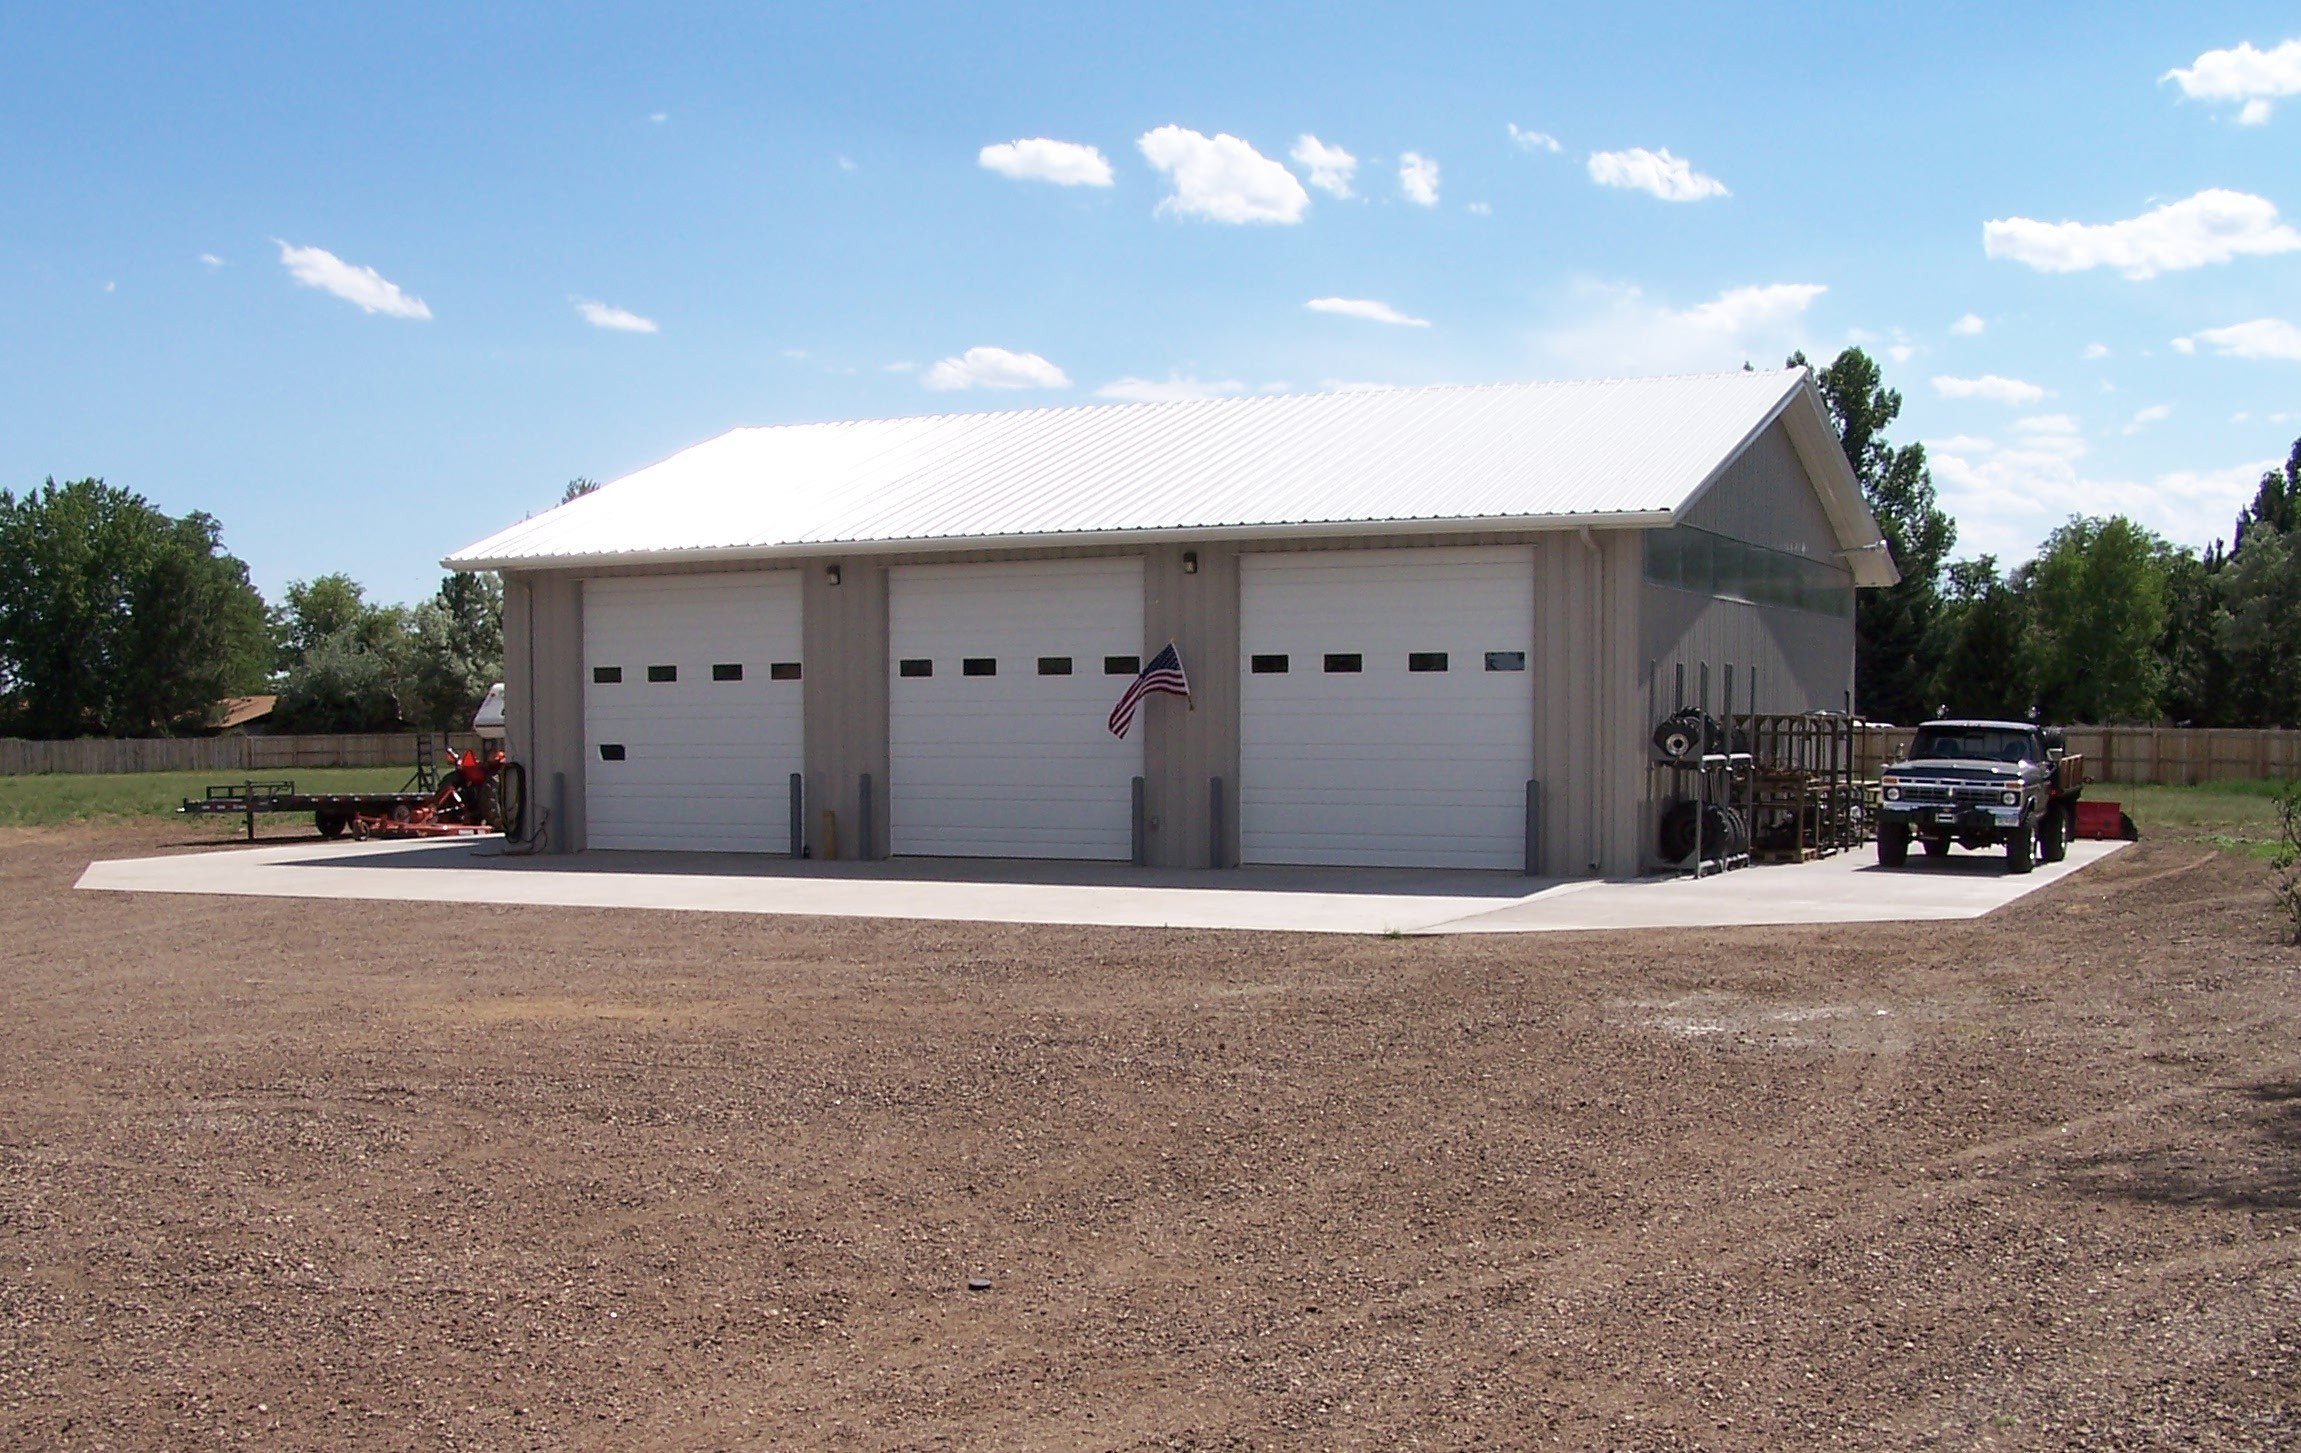 8 Critical Considerations When Finding a Location For Your New Steel Building